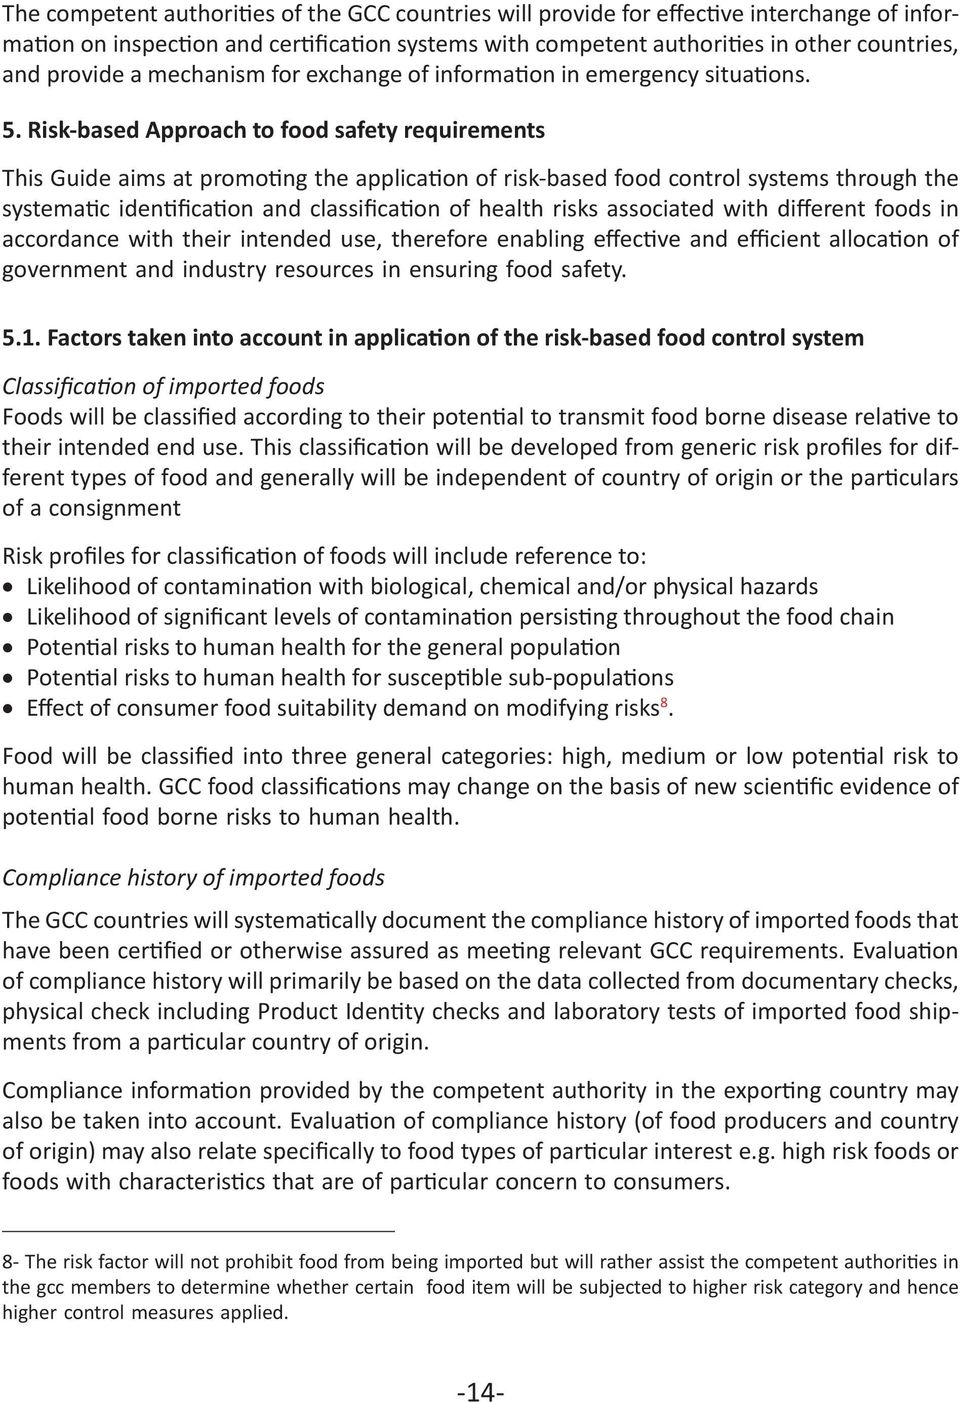 Risk-based Approach to food safety requirements This Guide aims at promoting the application of risk-based food control systems through the systematic identification and classification of health